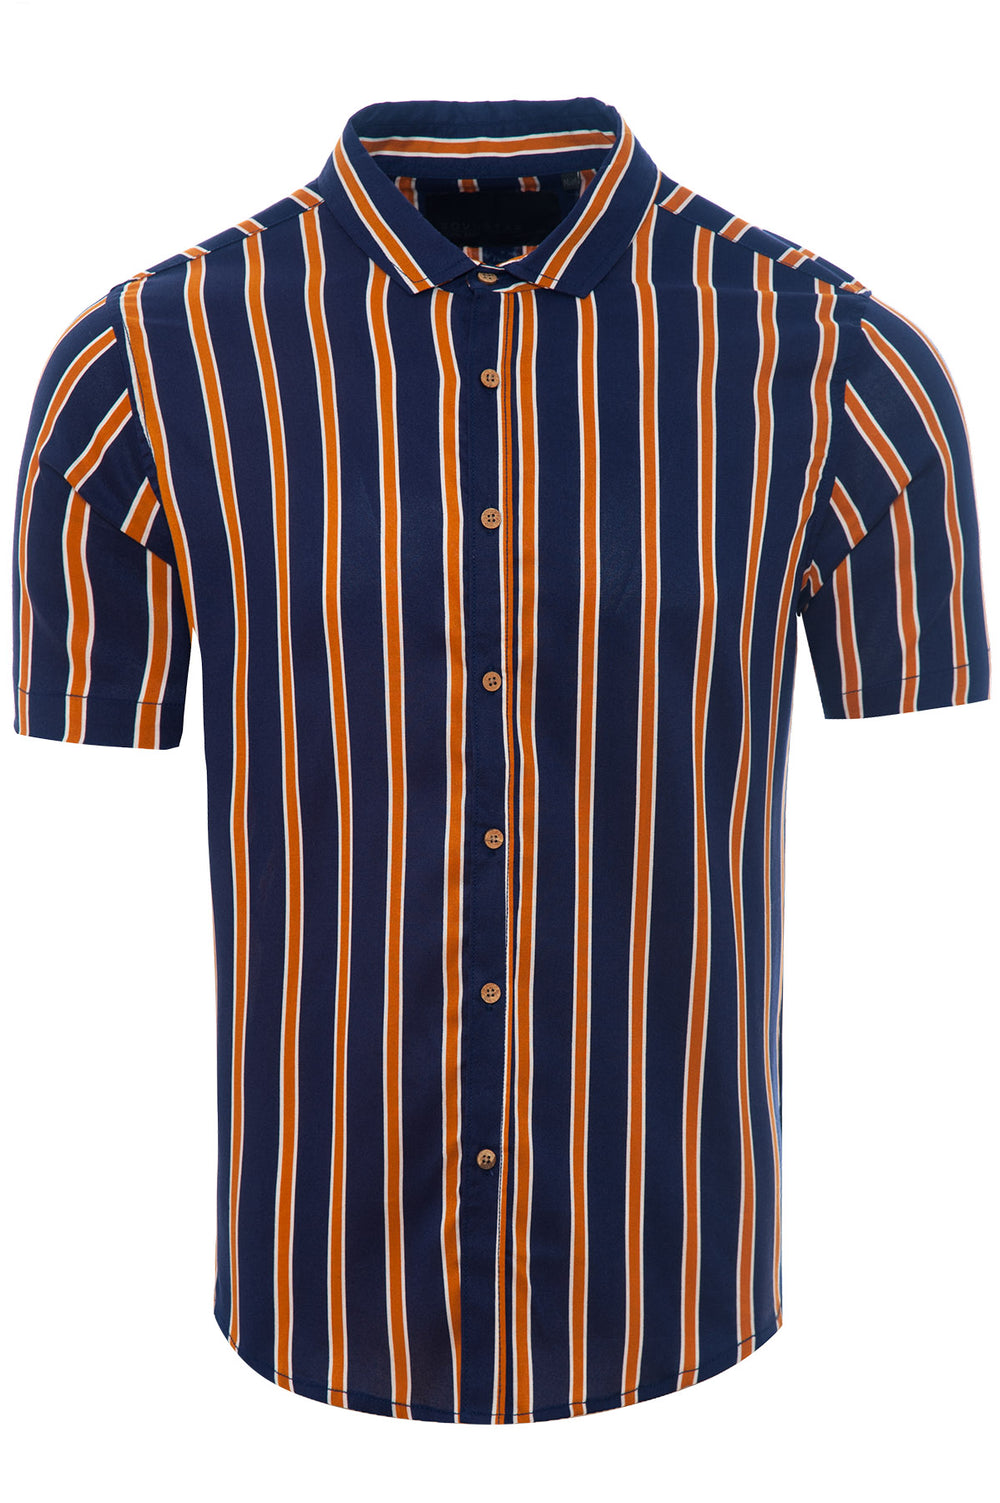 Soft Feel Thin Stripe Shirt Navy